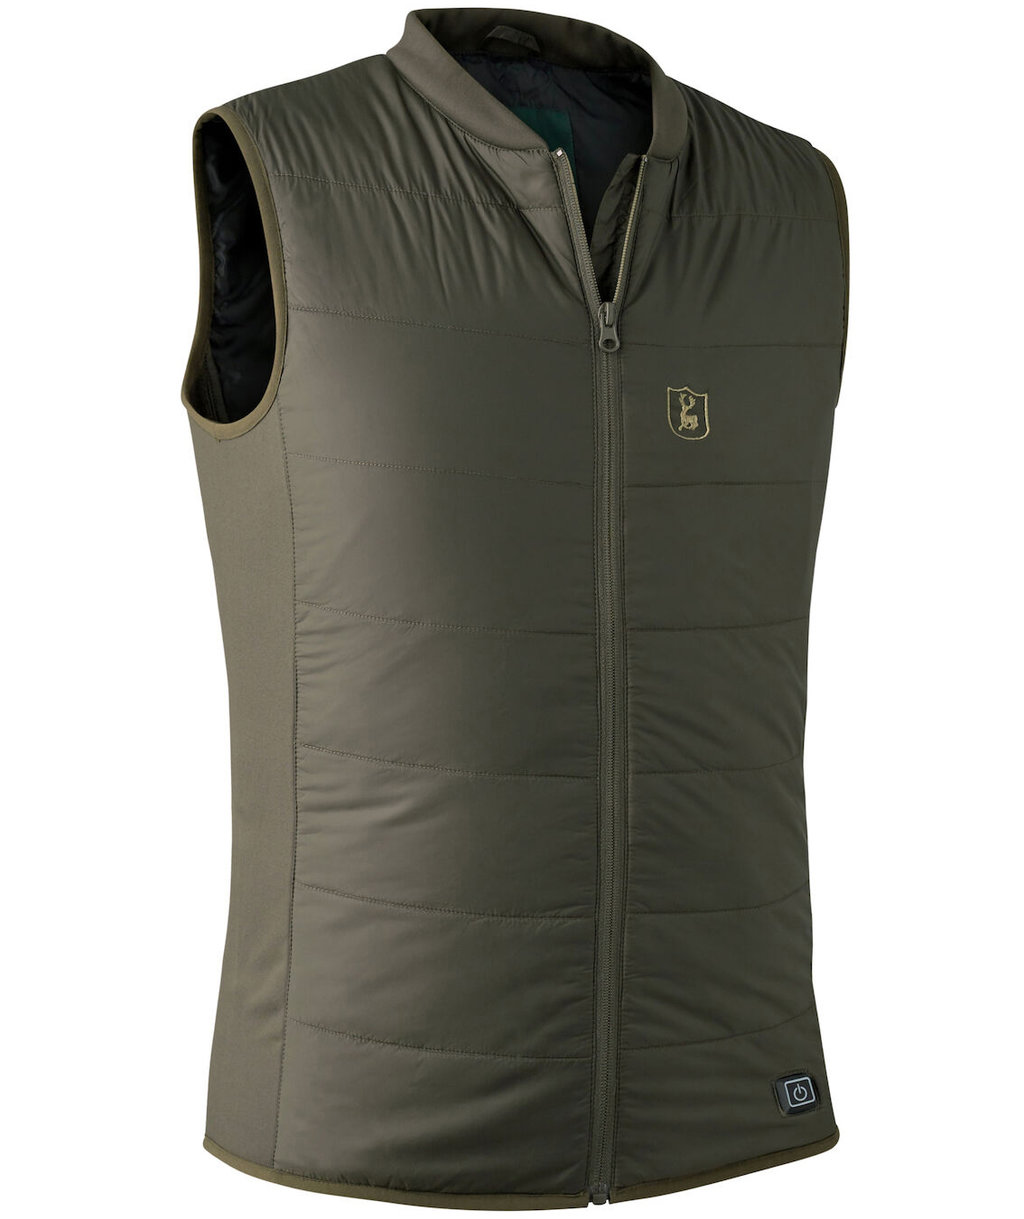 Deerhunter Heat innervest, Deep Green